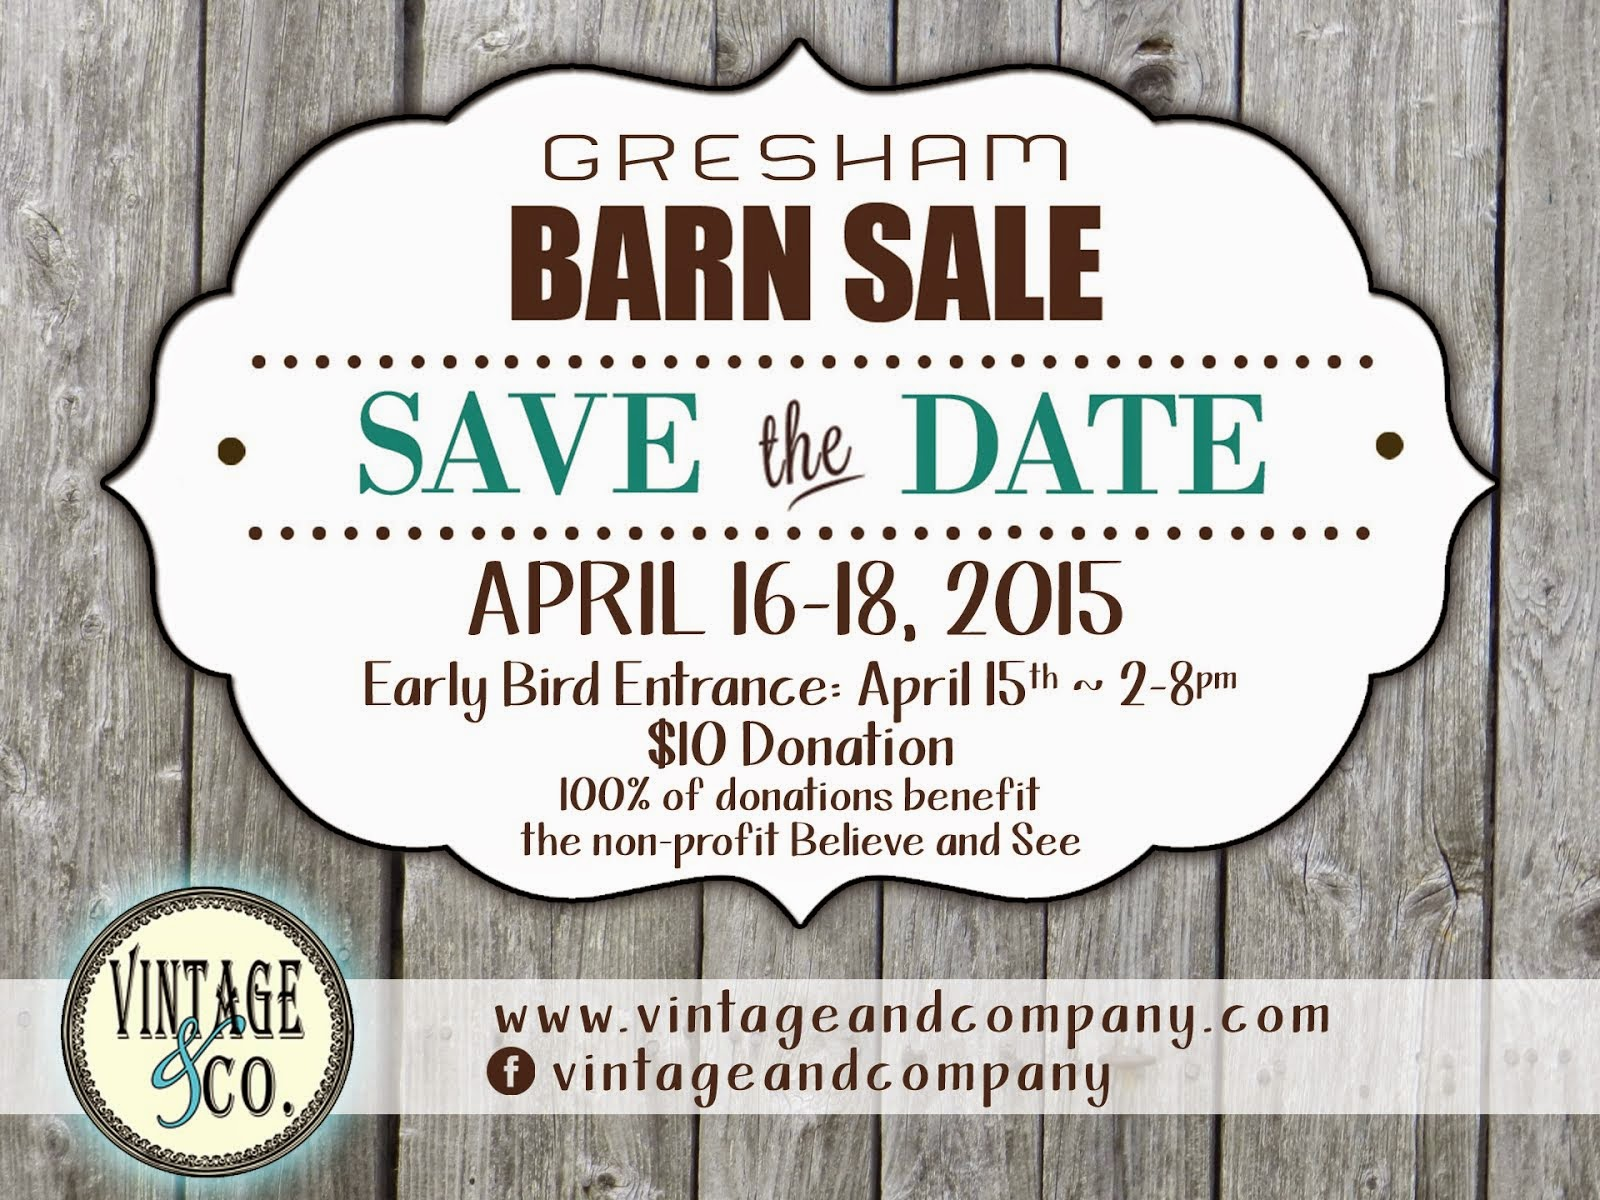 Spring Barn Sale Dates